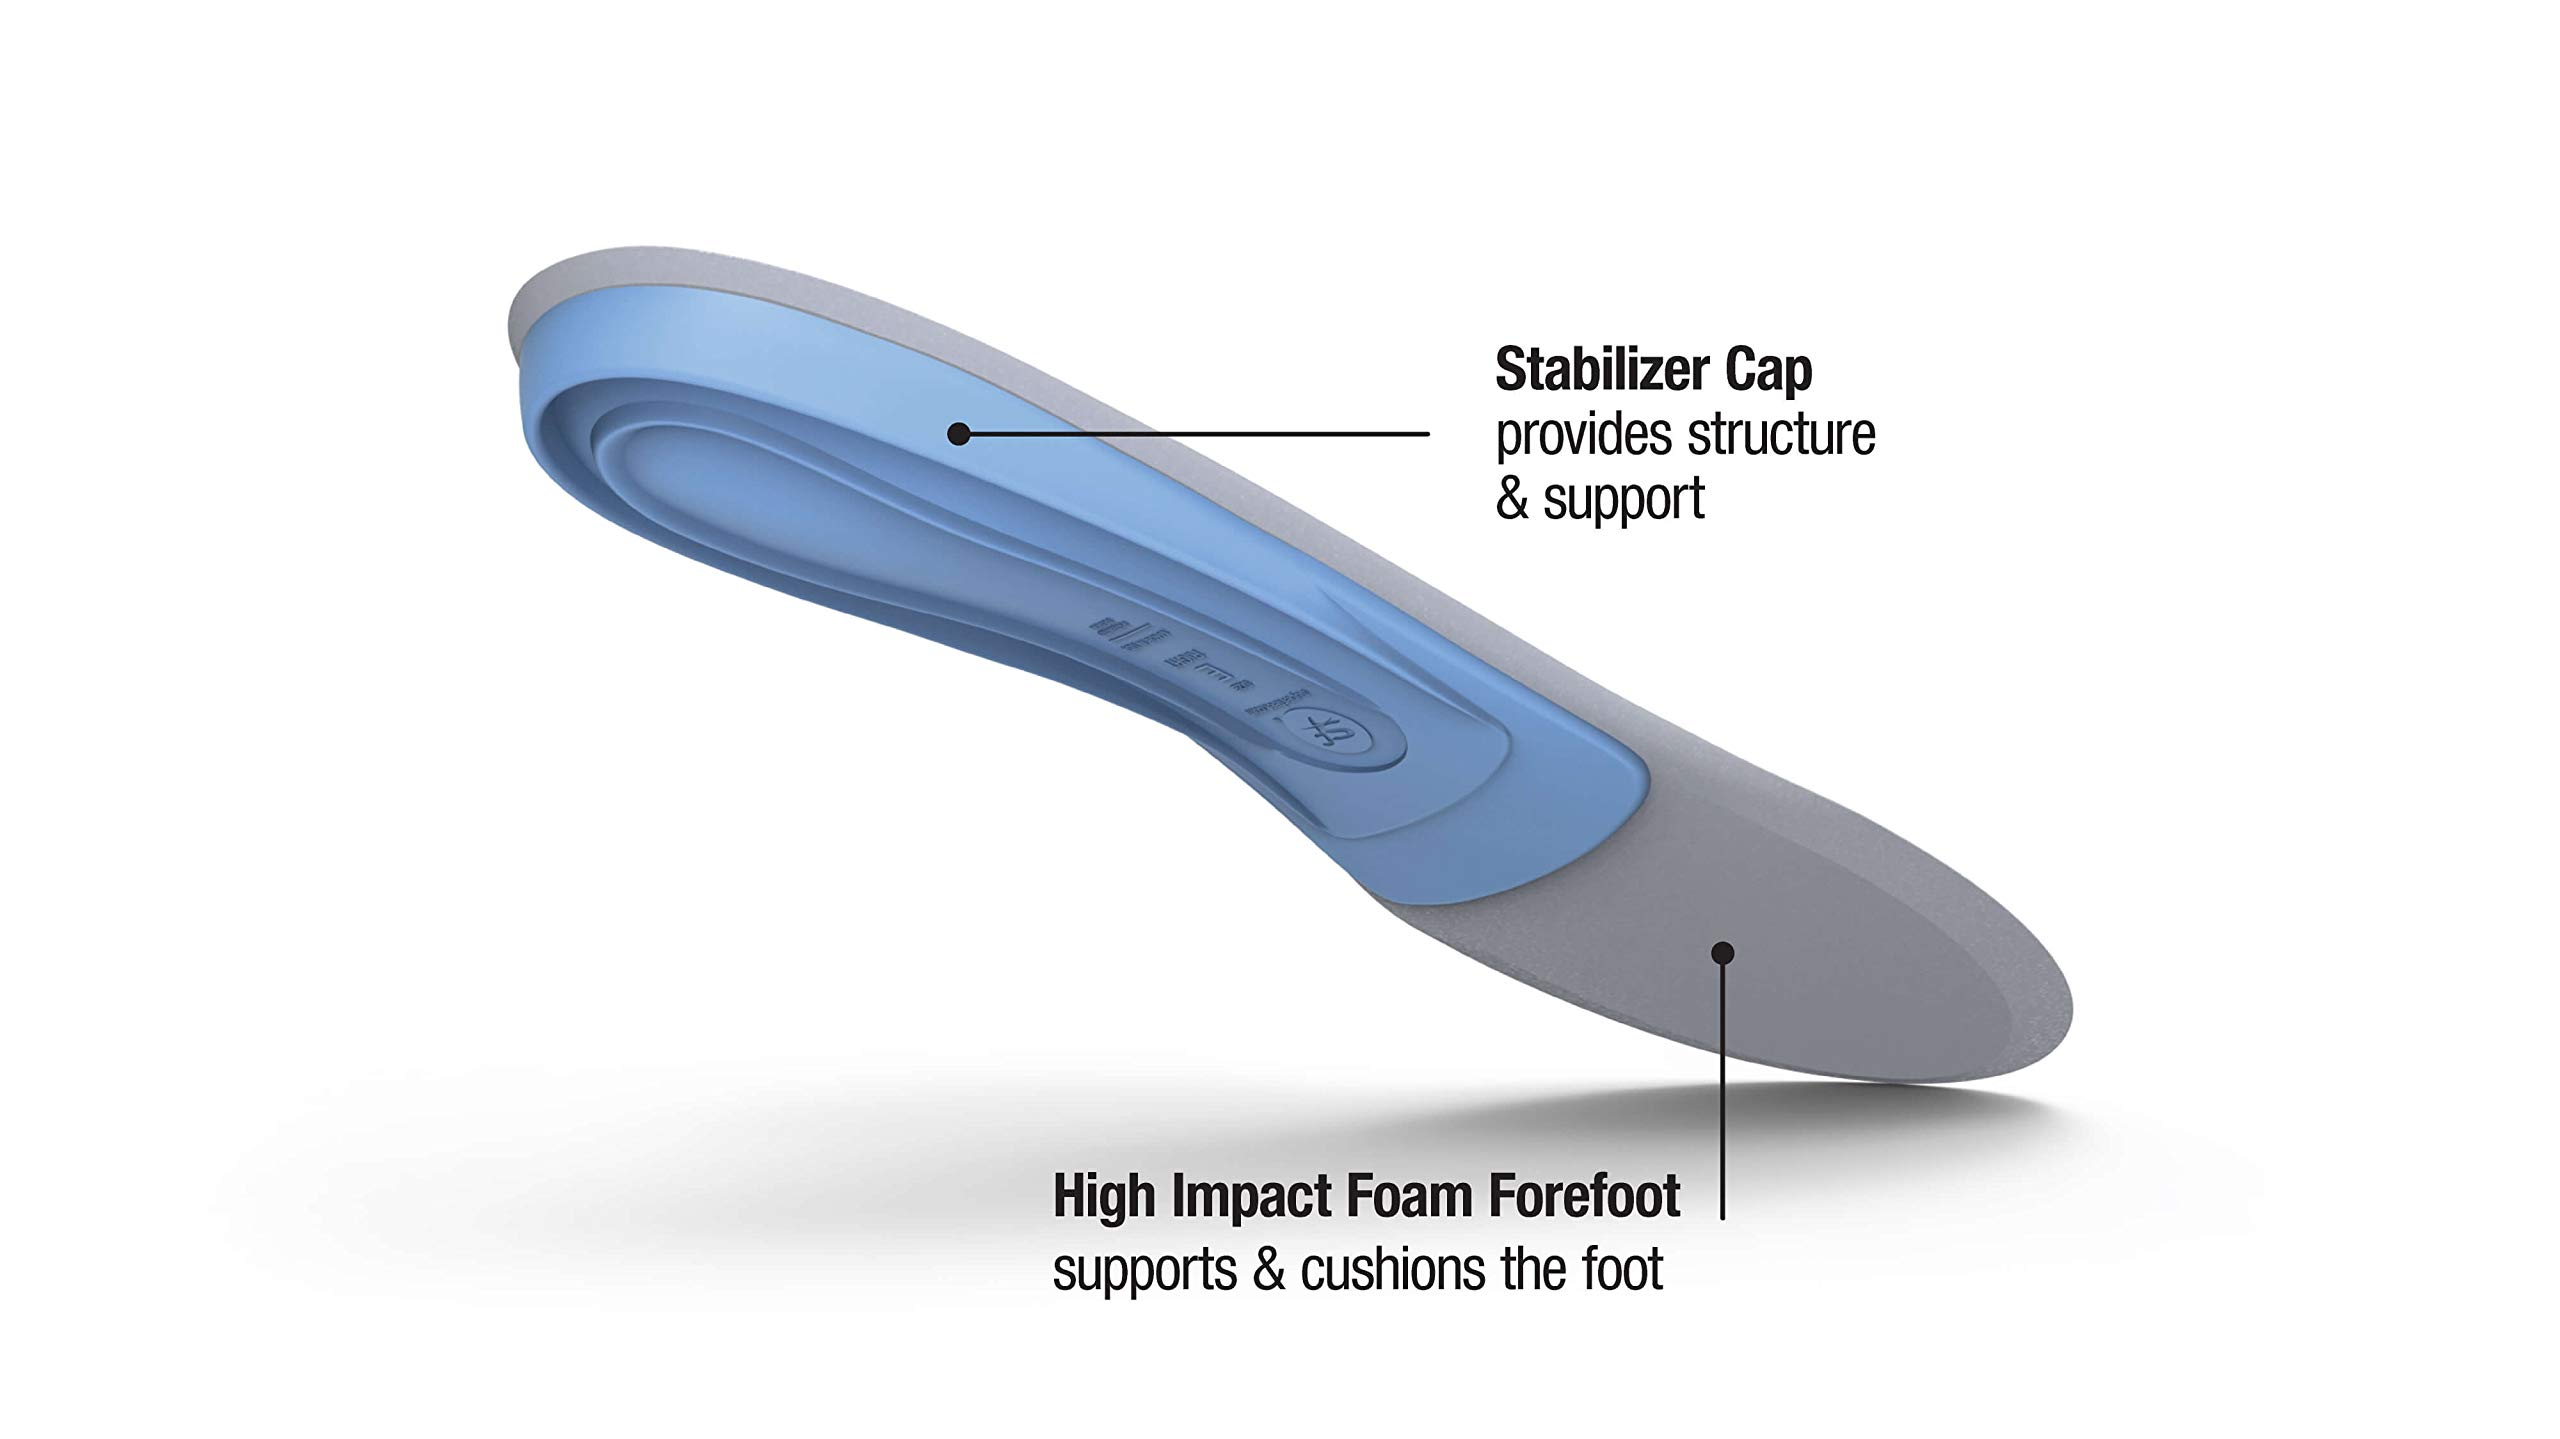 Superfeet BLUE Full Length Insole, Blue, E: 10.5-12 US Womens / 9.5-11 US Mens by Superfeet (Image #4)